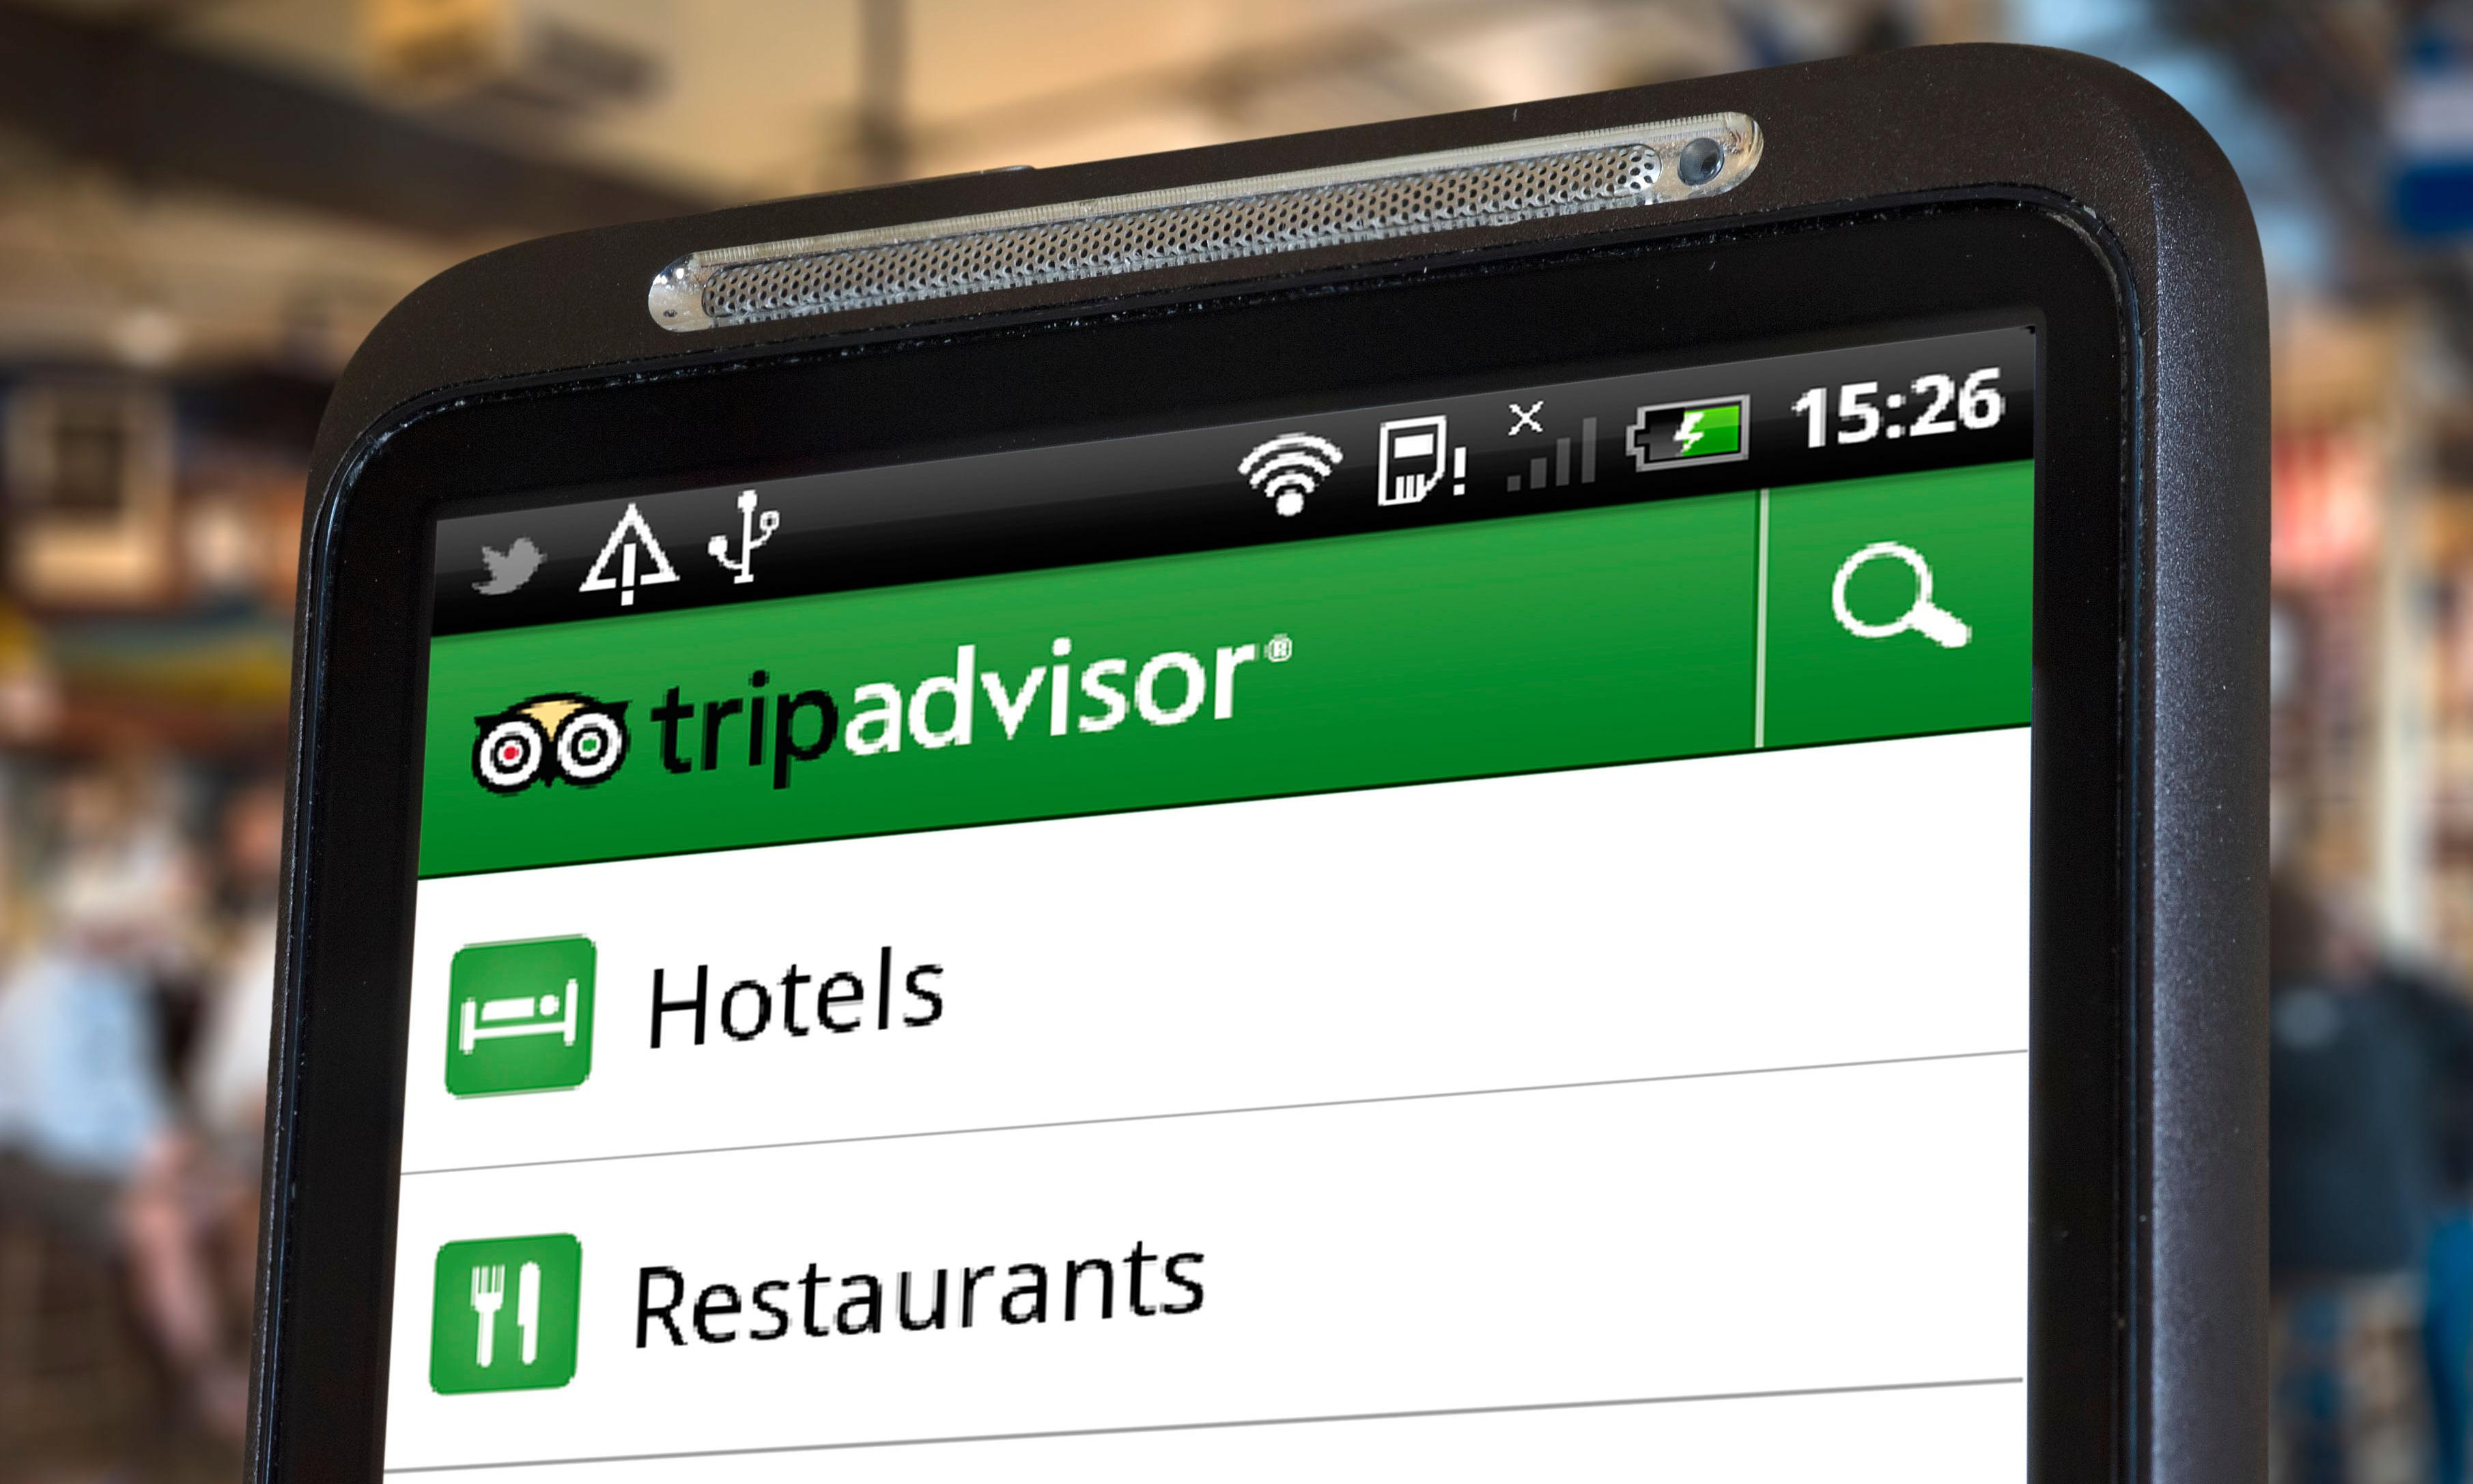 Twitter campaign takes aim at fake restaurant reviews on TripAdvisor